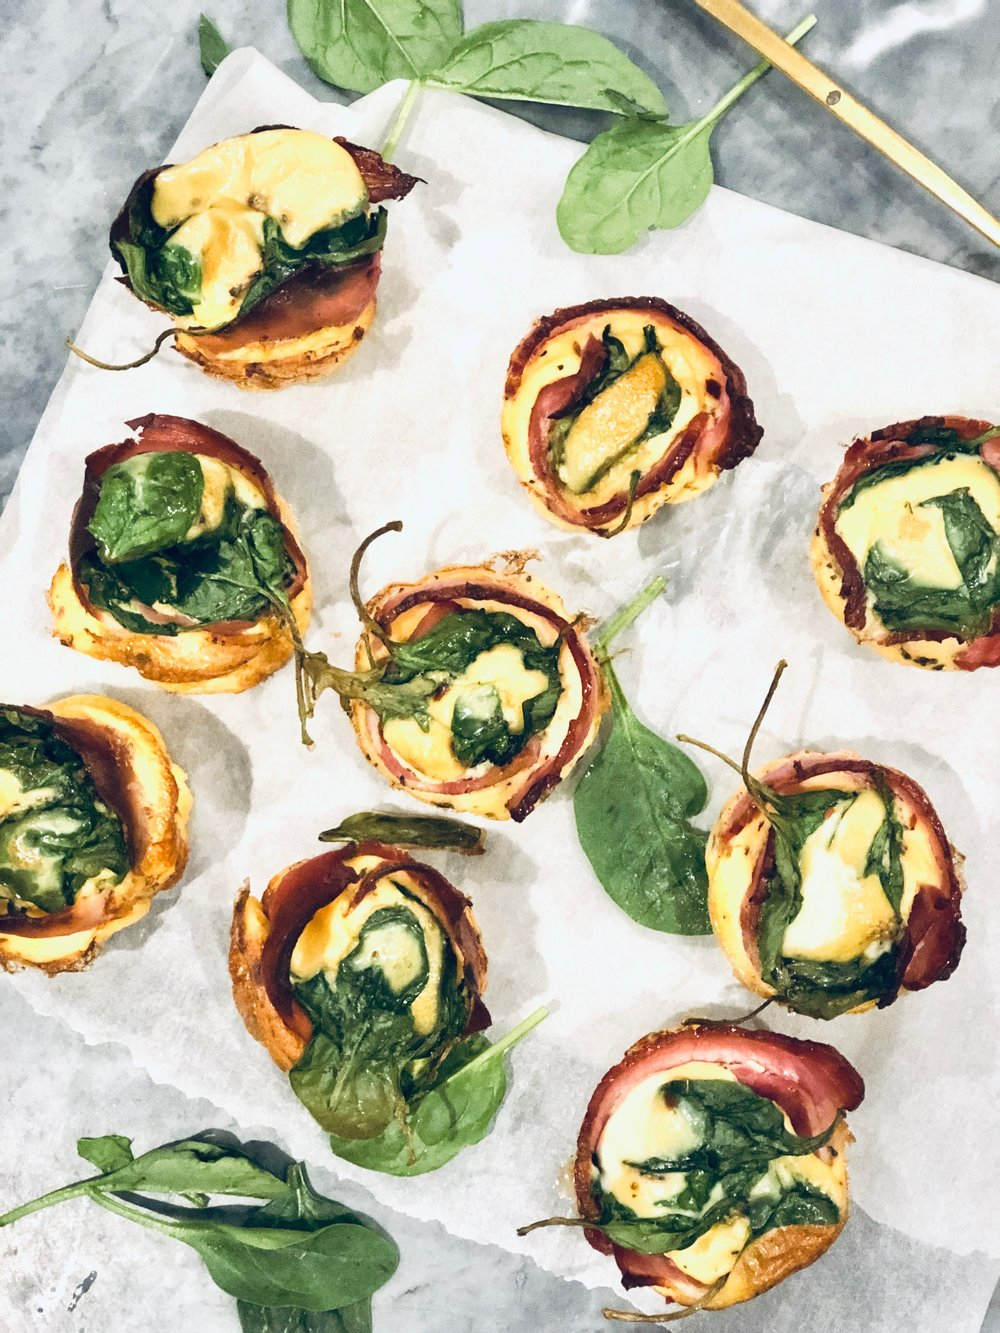 - Makes: 1 x dozen (Trust me you will want that many!)Ingredients12 eggsOptional: 12 slices very good quality smoked ham or bacon. If using bacon remove rind.1 teaspoon sea salt4 tbs flat leaf parsley (or whatever herbs you have on hand)Generous dash of cumin1 cup milk of choice (I use almond)Generous cup or two of spinachSun dried tomatoes (optional)100g Feta if you can tolerate dairy (more or less as desired)* Buy organic where possibleMethod1. Preheat oven to 180 degrees and either grease with coconut oil/butter or line muffin pan with squares of baking paper.2. Line each muffin mould with a rasher of the ham or bacon3. In large bowl, lightly whisk eggs, parsley, cumin, salt and milk.4. Add spinach, sprinkle through feta in chunks and sun dried tomatoes (if using)5. Divide egg mix between 12 muffin moulds. 6. Bake for 25 minutes, until ham/bacon is crisp and egg is just set.7. Enjoy as a meal or snack and be happy – these are so delicious!